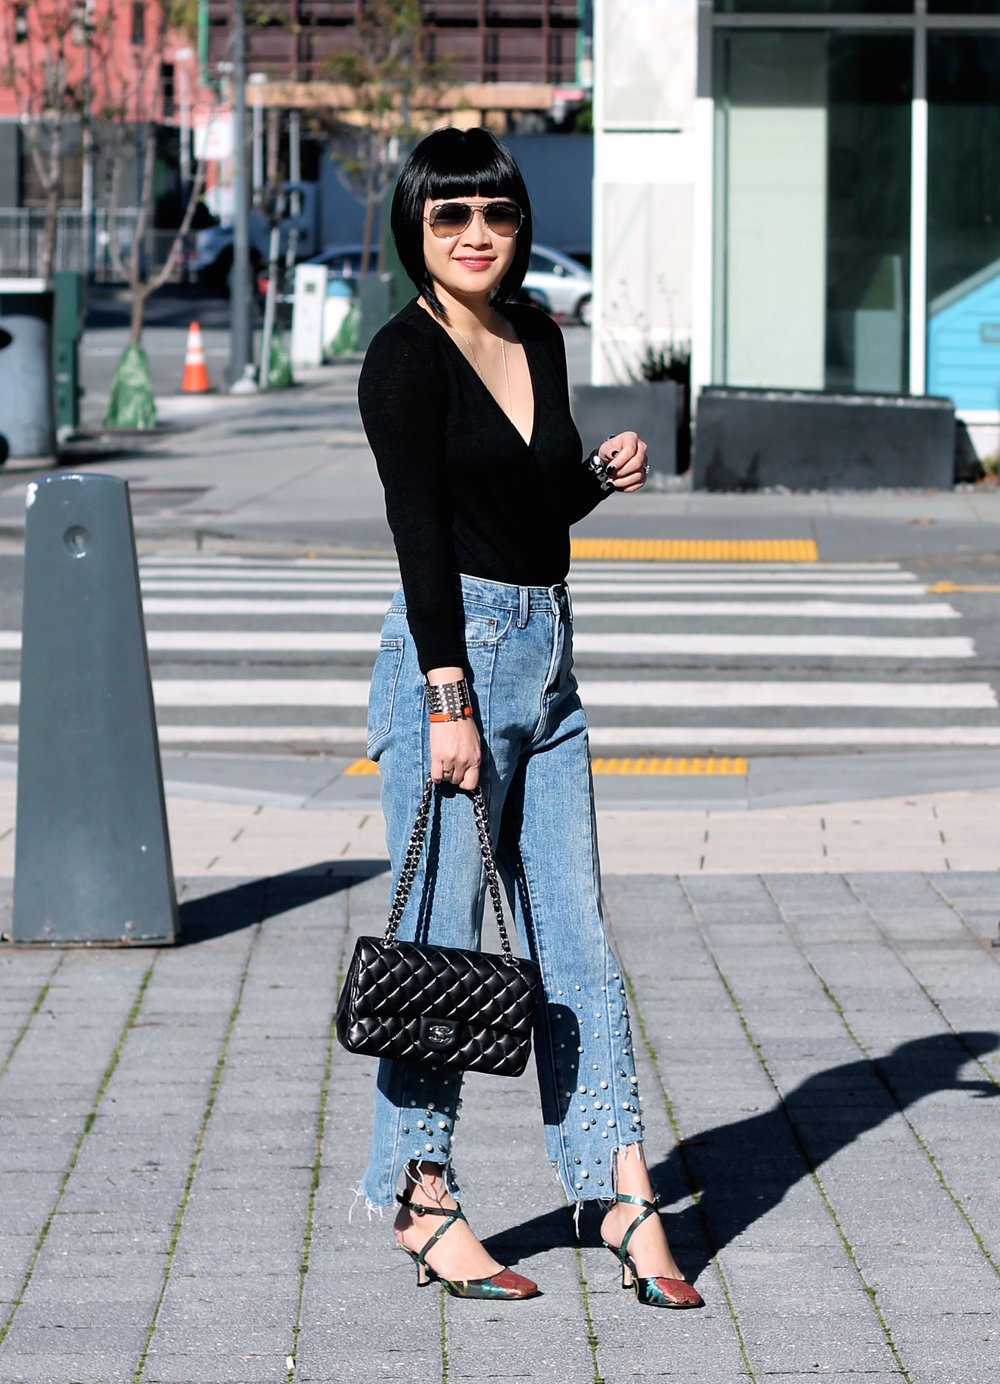 Storets jeans, Aritzia top, Zara shoes, Ray-Ban sunglasses, Chanel bag